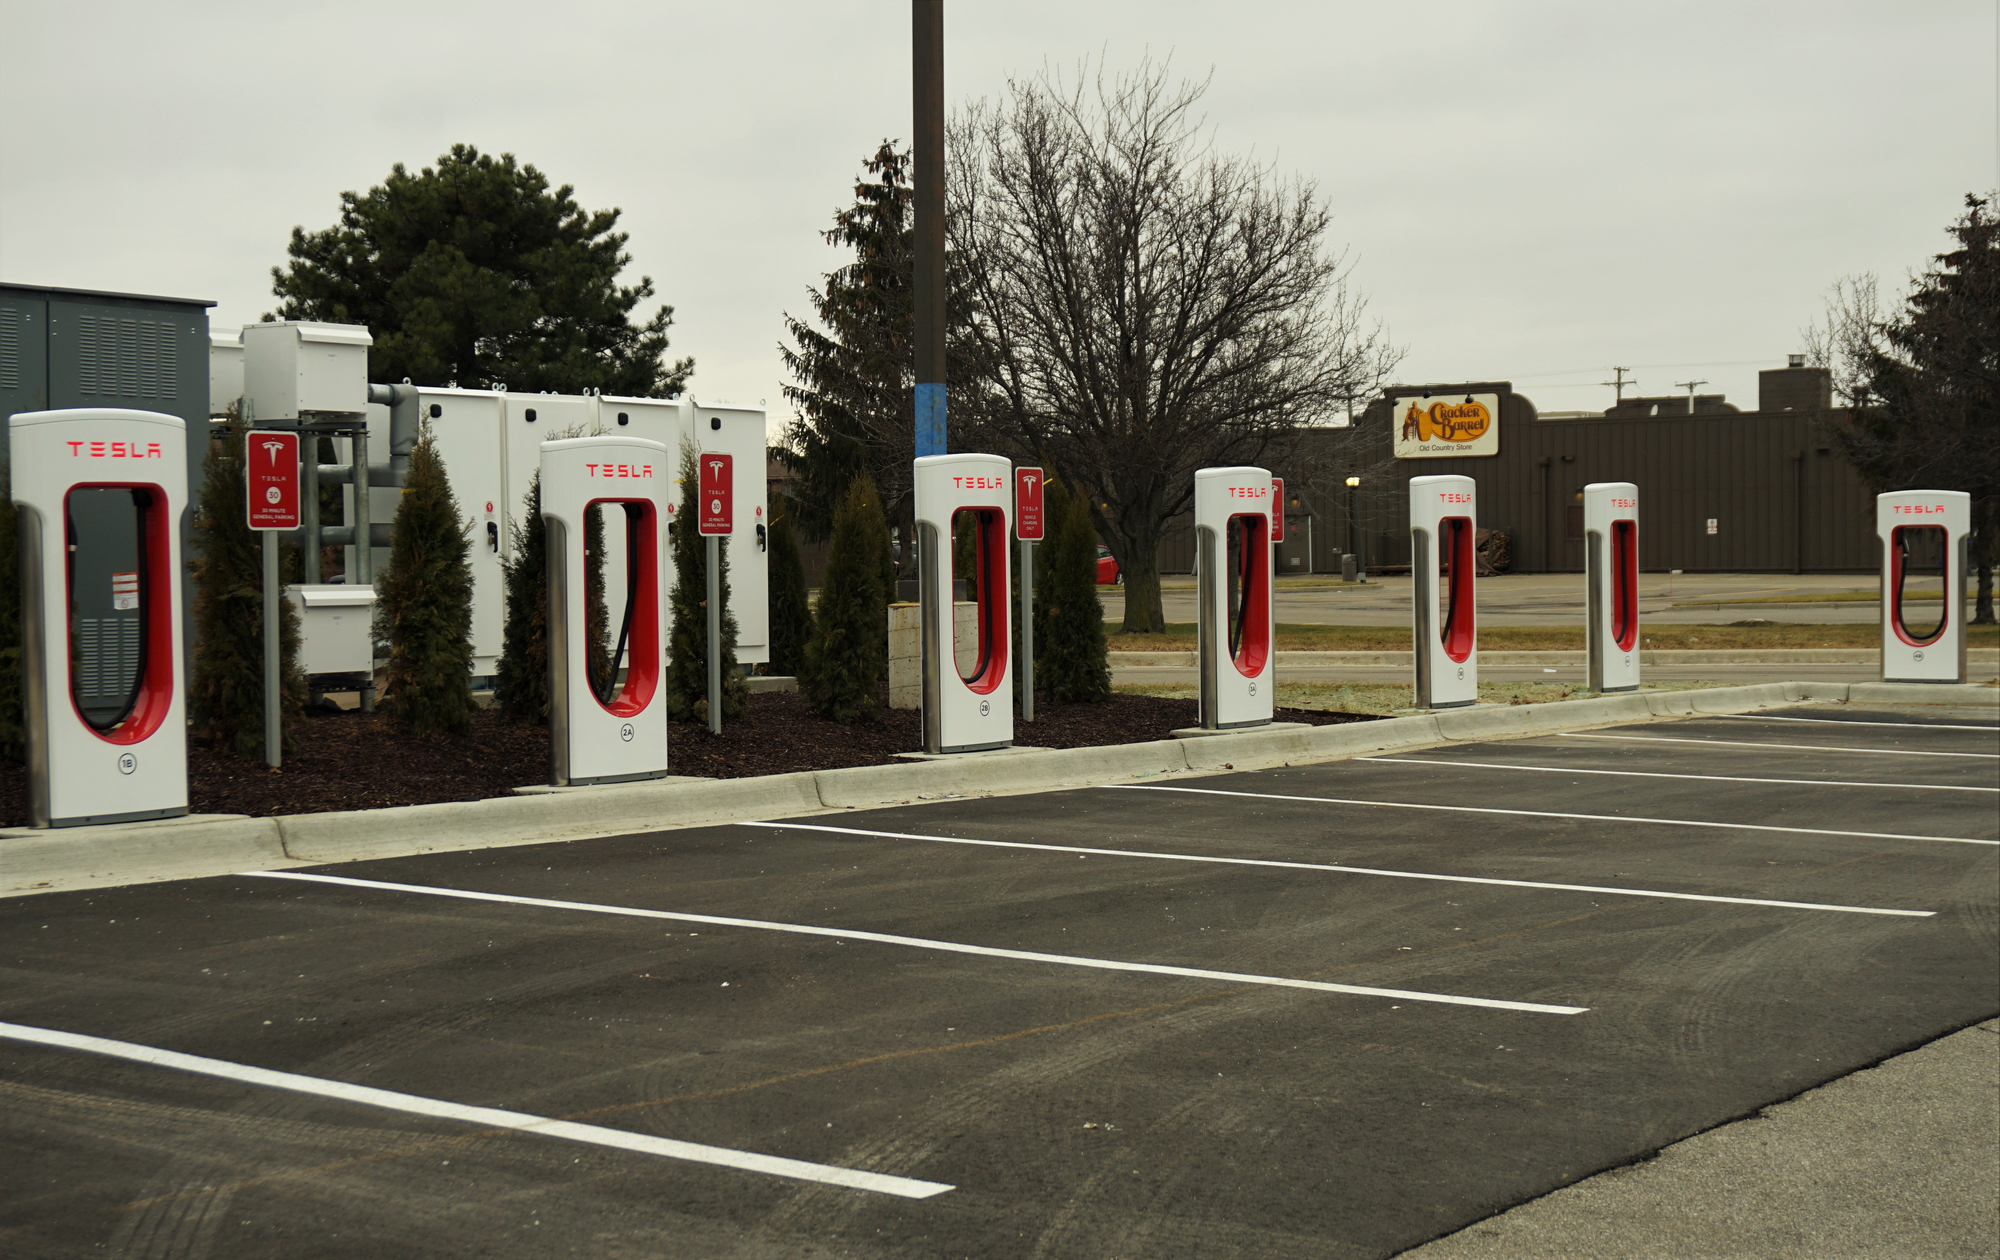 Tesla has placed recharging stations at select locations like this Meijer store parking lot in Roseville, Michigan. Dawn Uhl-Zifilippo/WDET